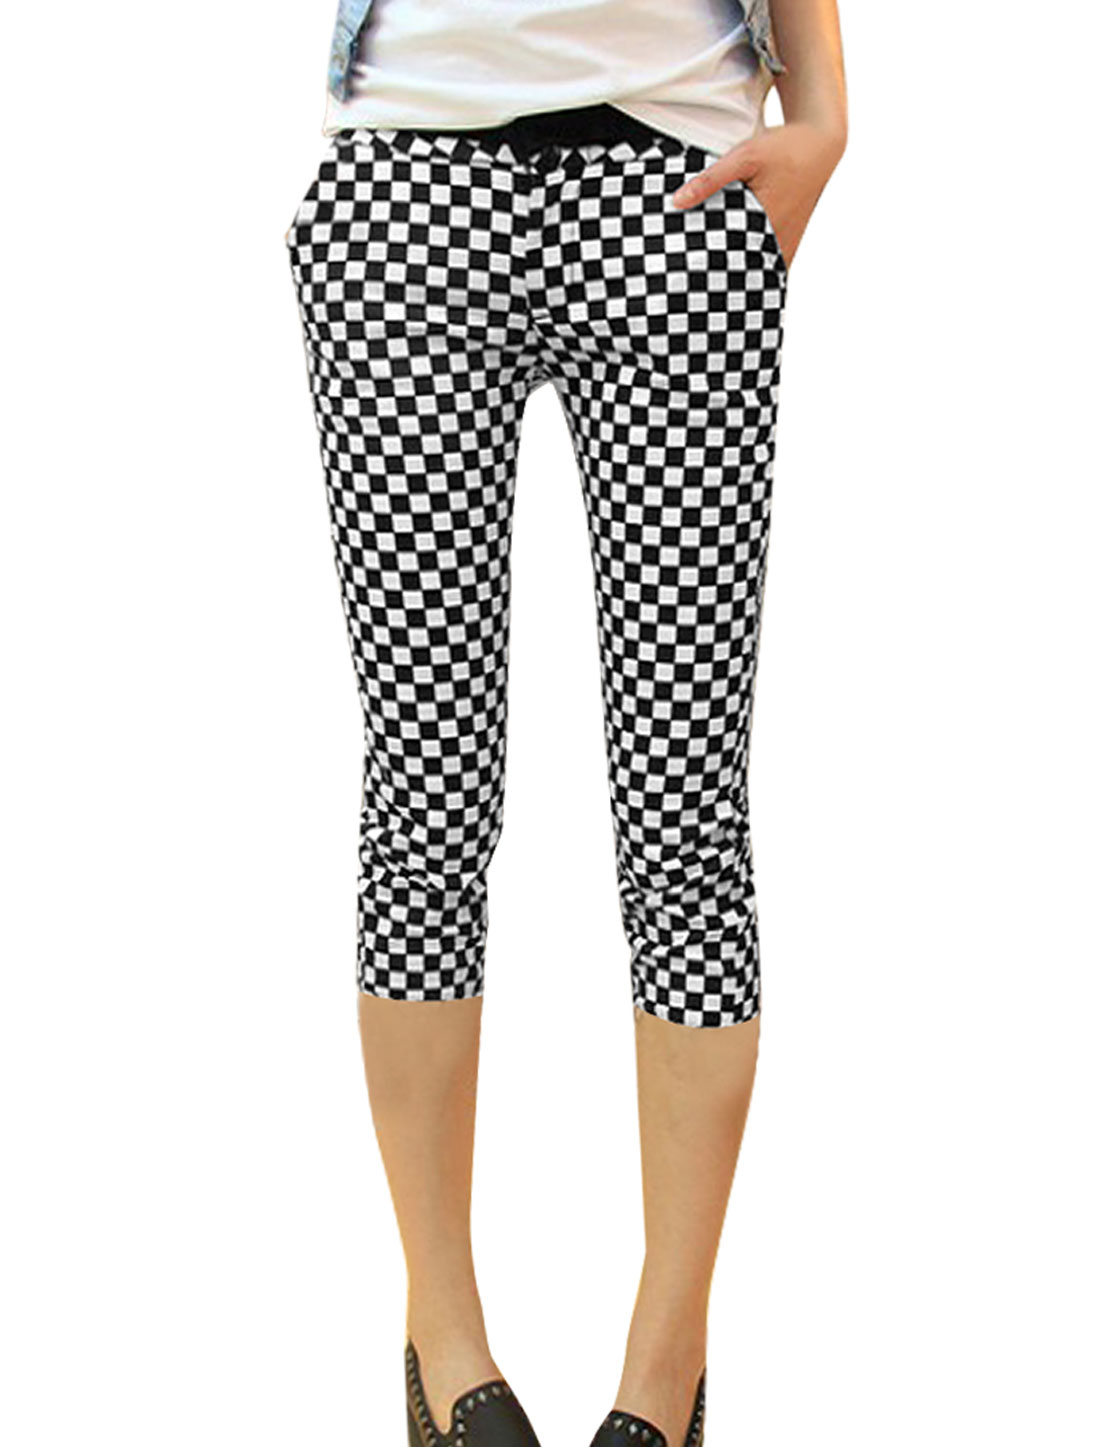 Lady Zip Fly Closure Buttoned Plaids Prints Black White Slim Fit Pants XS